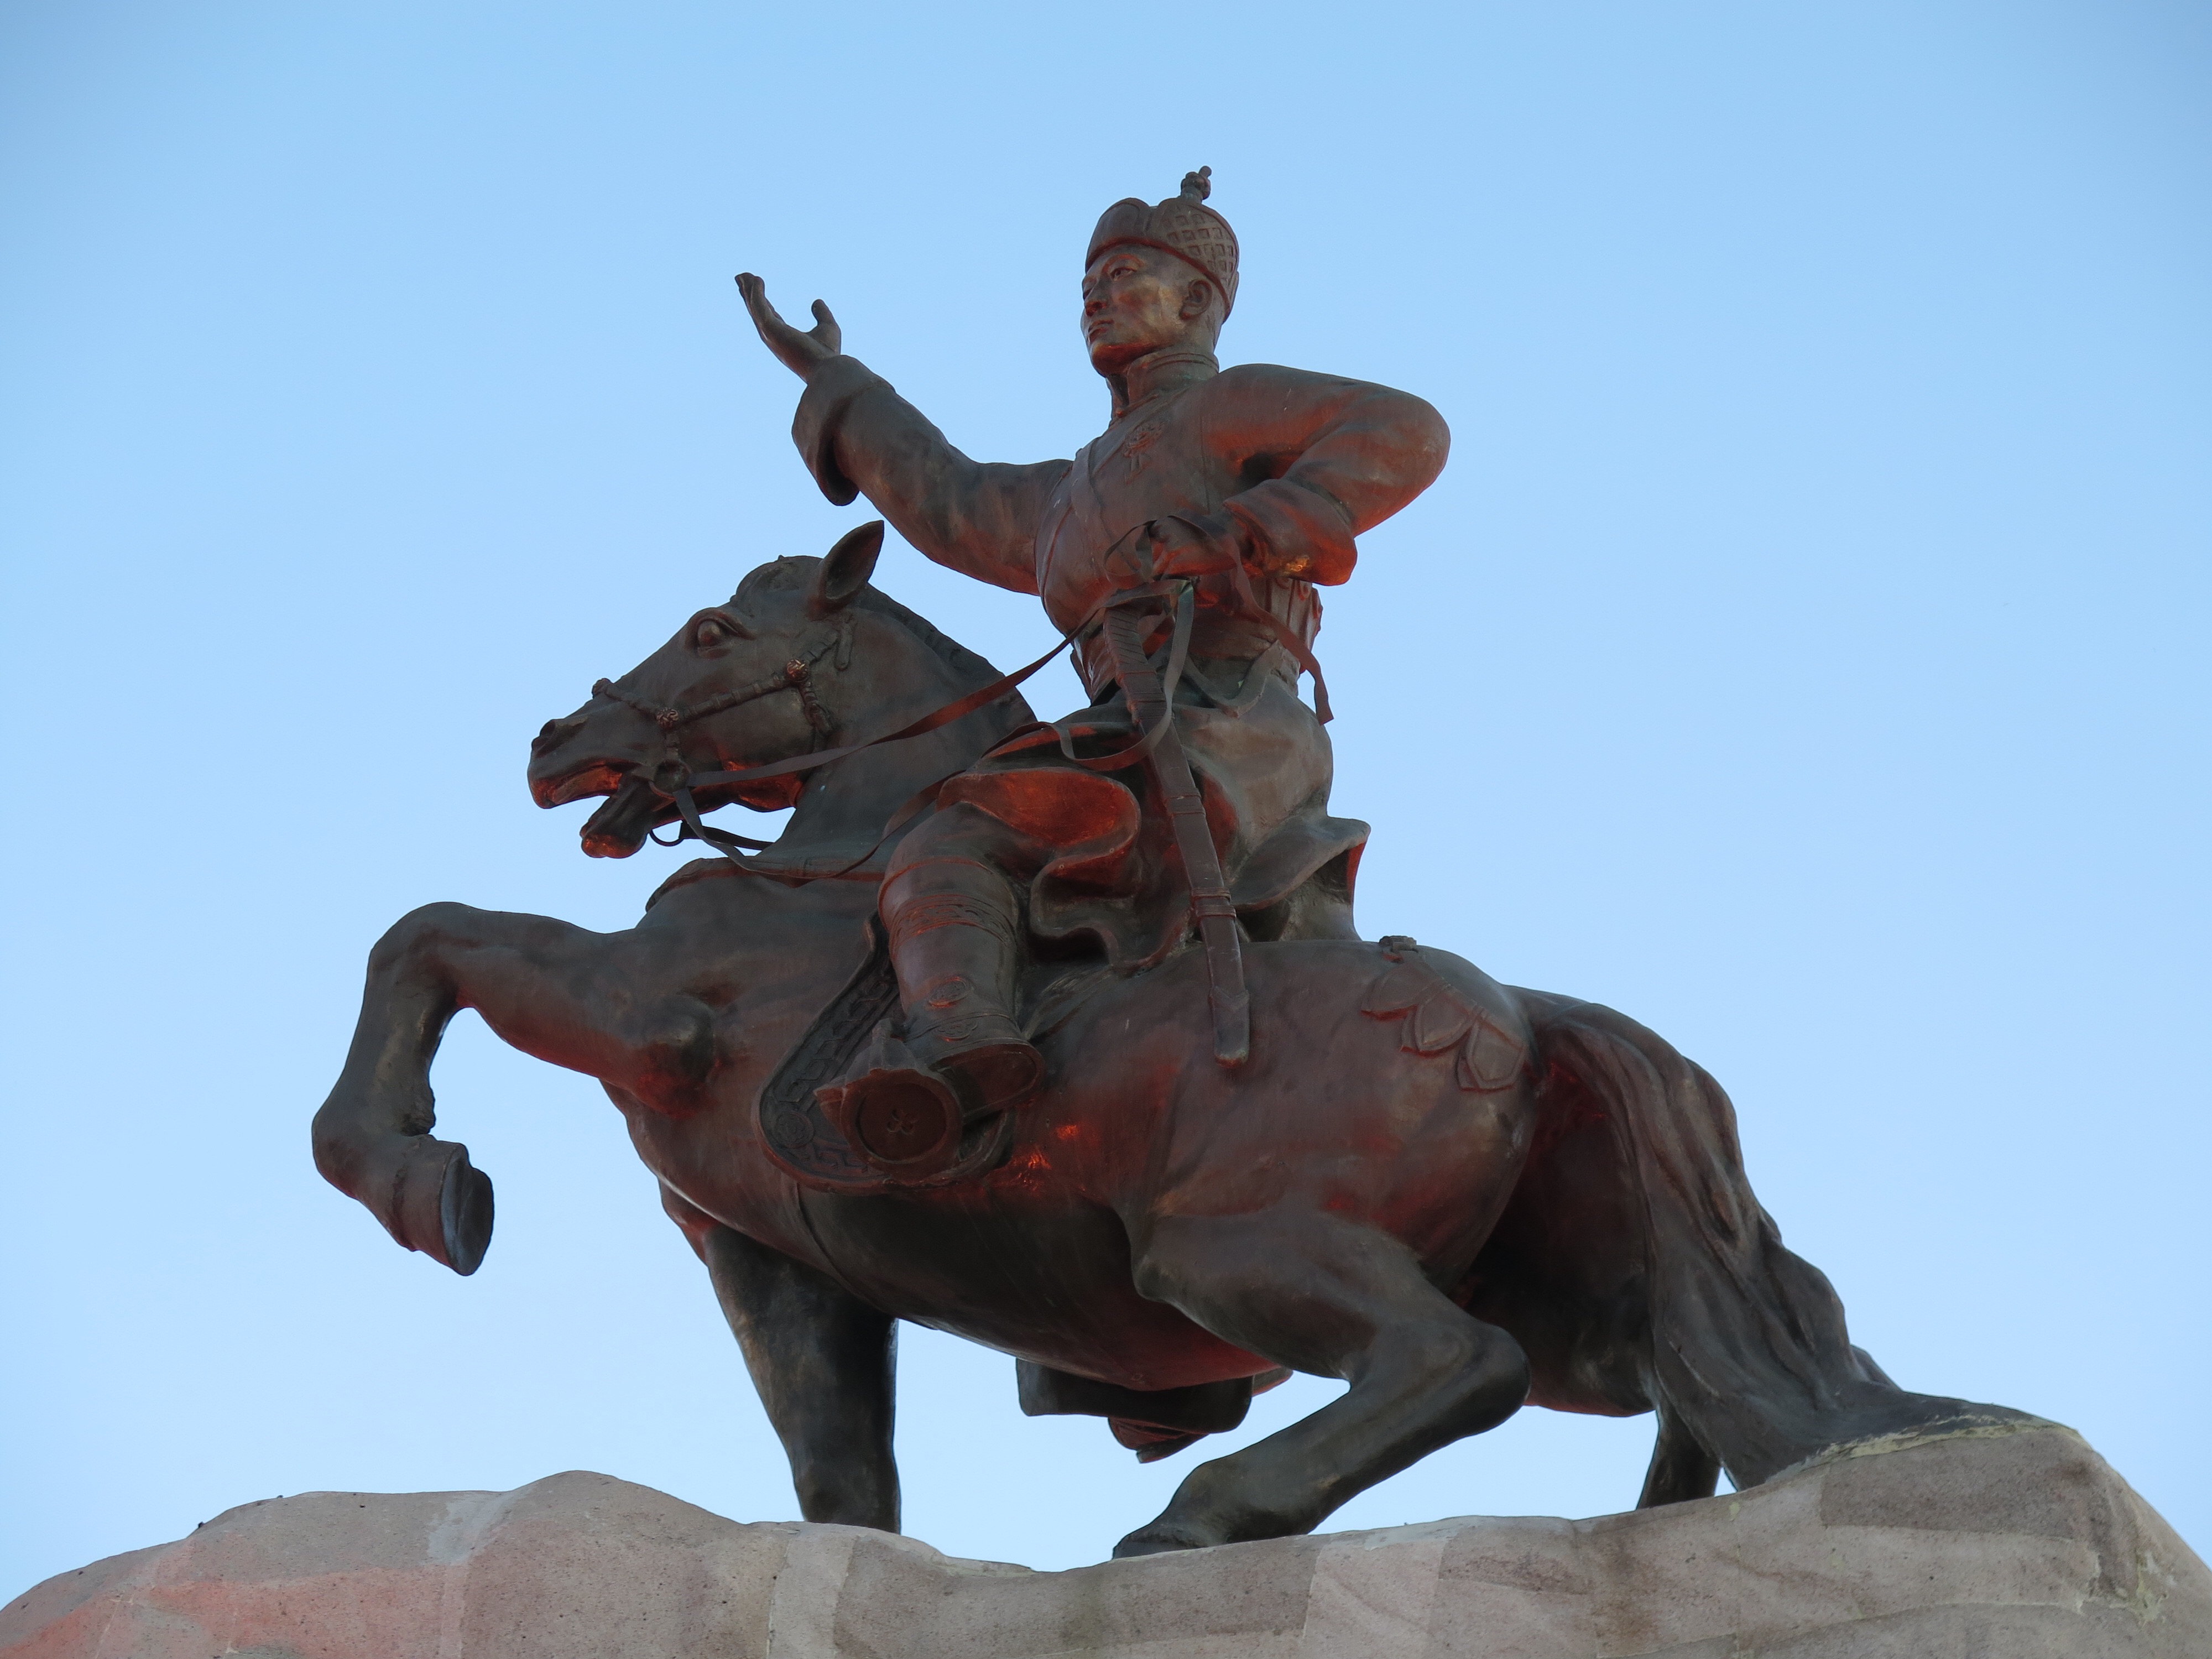 Statue of Damdinii Sükhbaatar, who was a leader of Mongolia.